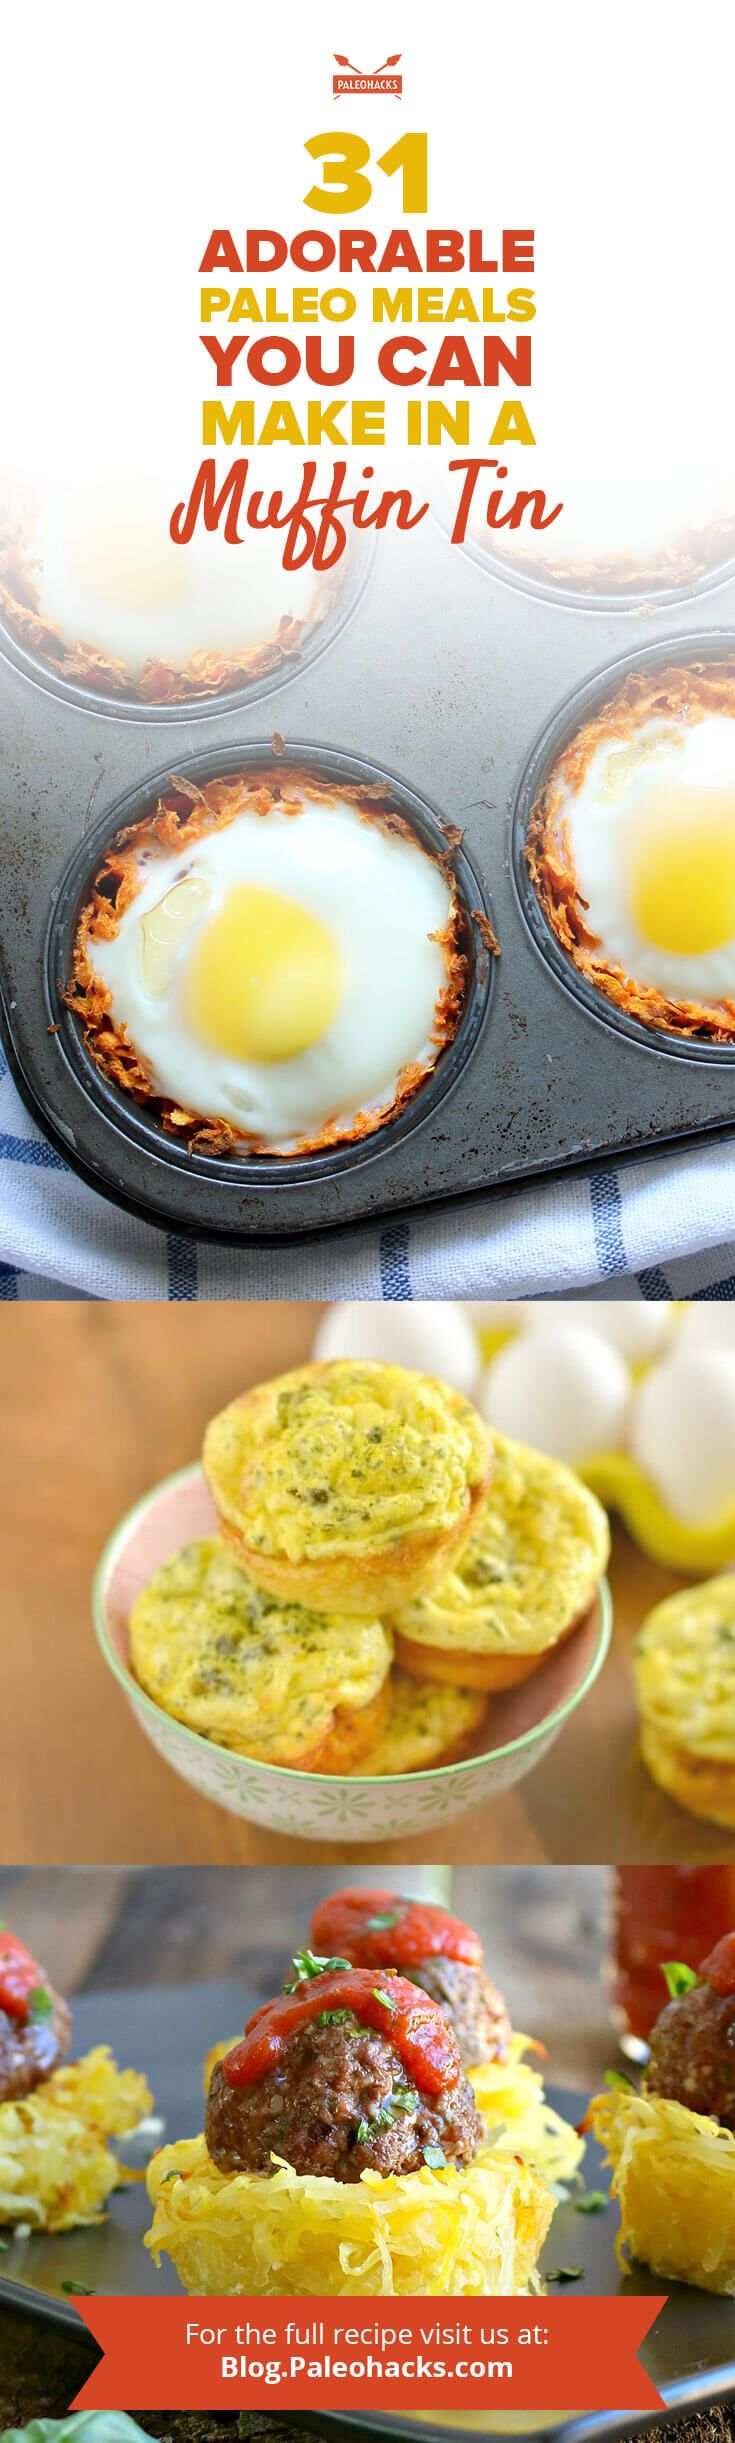 These 31 sweet and savory muffin tin meals are easy to whip up and can be eaten on the go! Get all recipes here: http://paleo.co/muffintinrcp